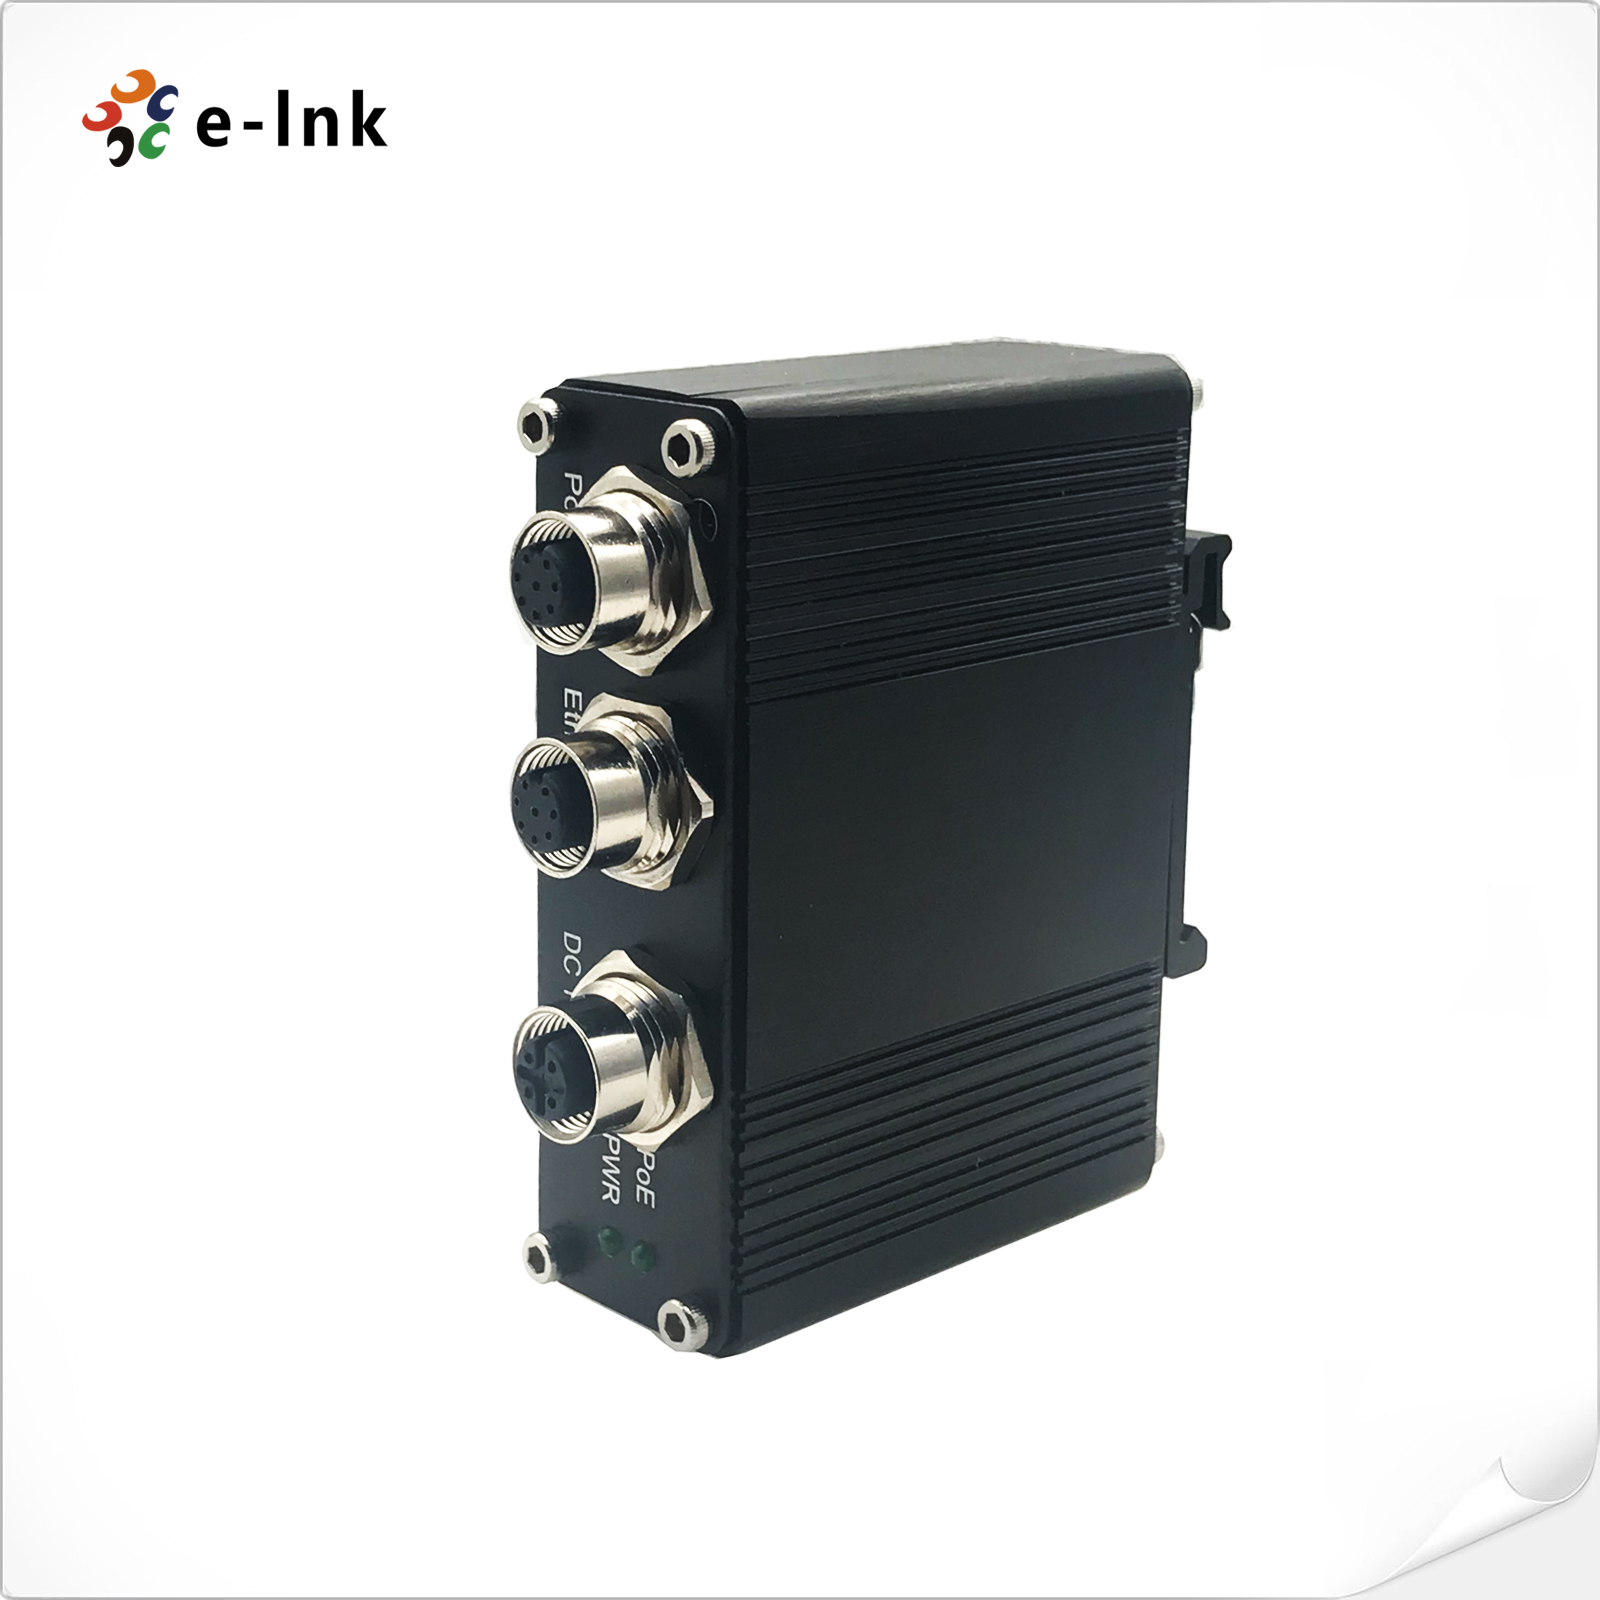 EN50155 Industrial 1-port 10/100/1000 PoE Injector with 30W output M12 connector